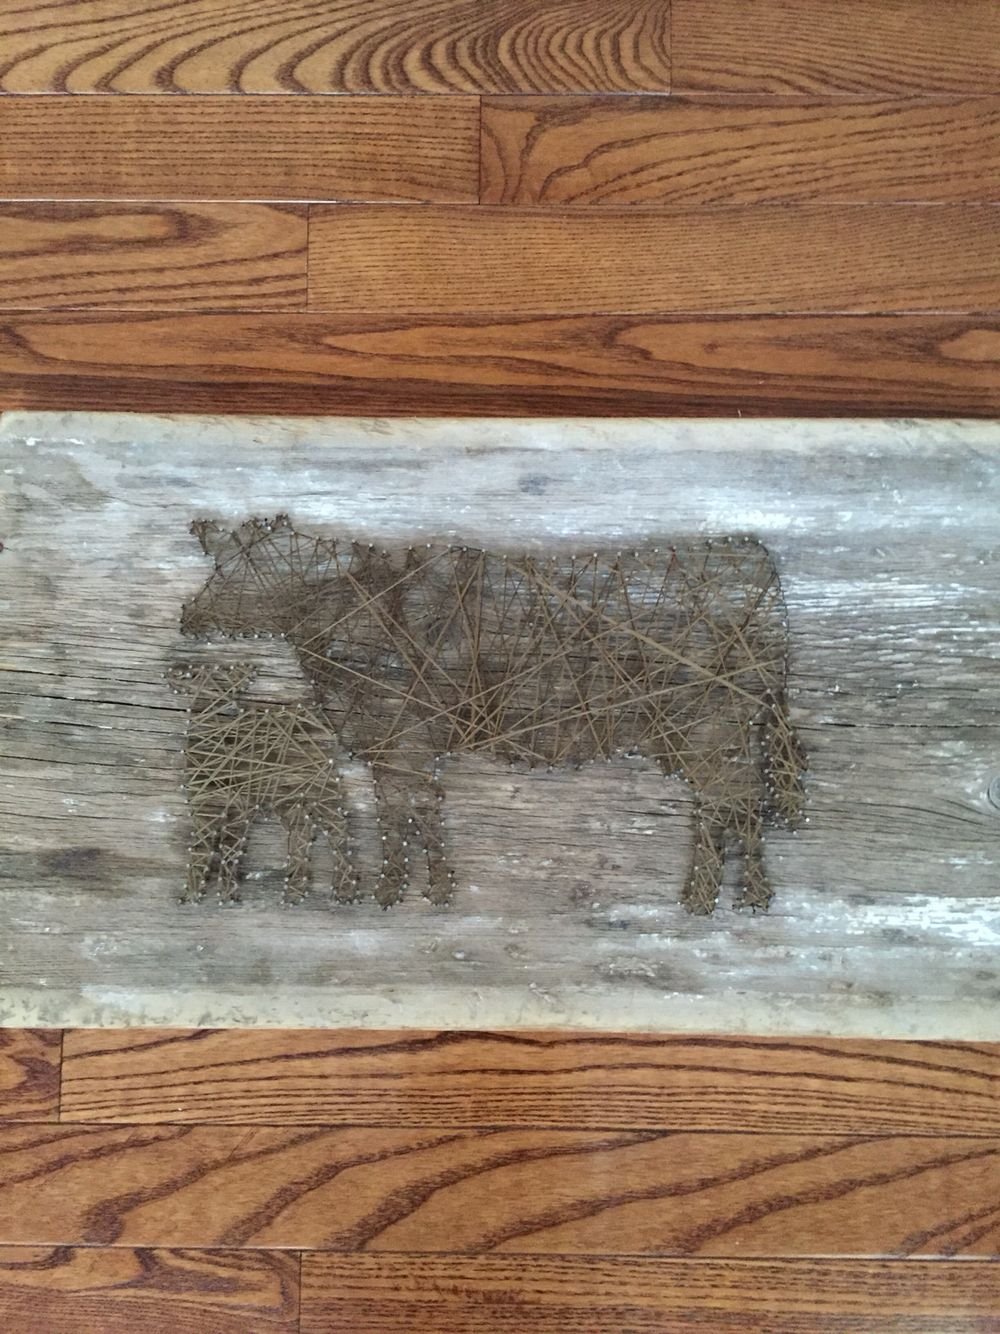 Barnwood Cow and Calf String Art | Barnwood Craft Ideas | Pinterest ...